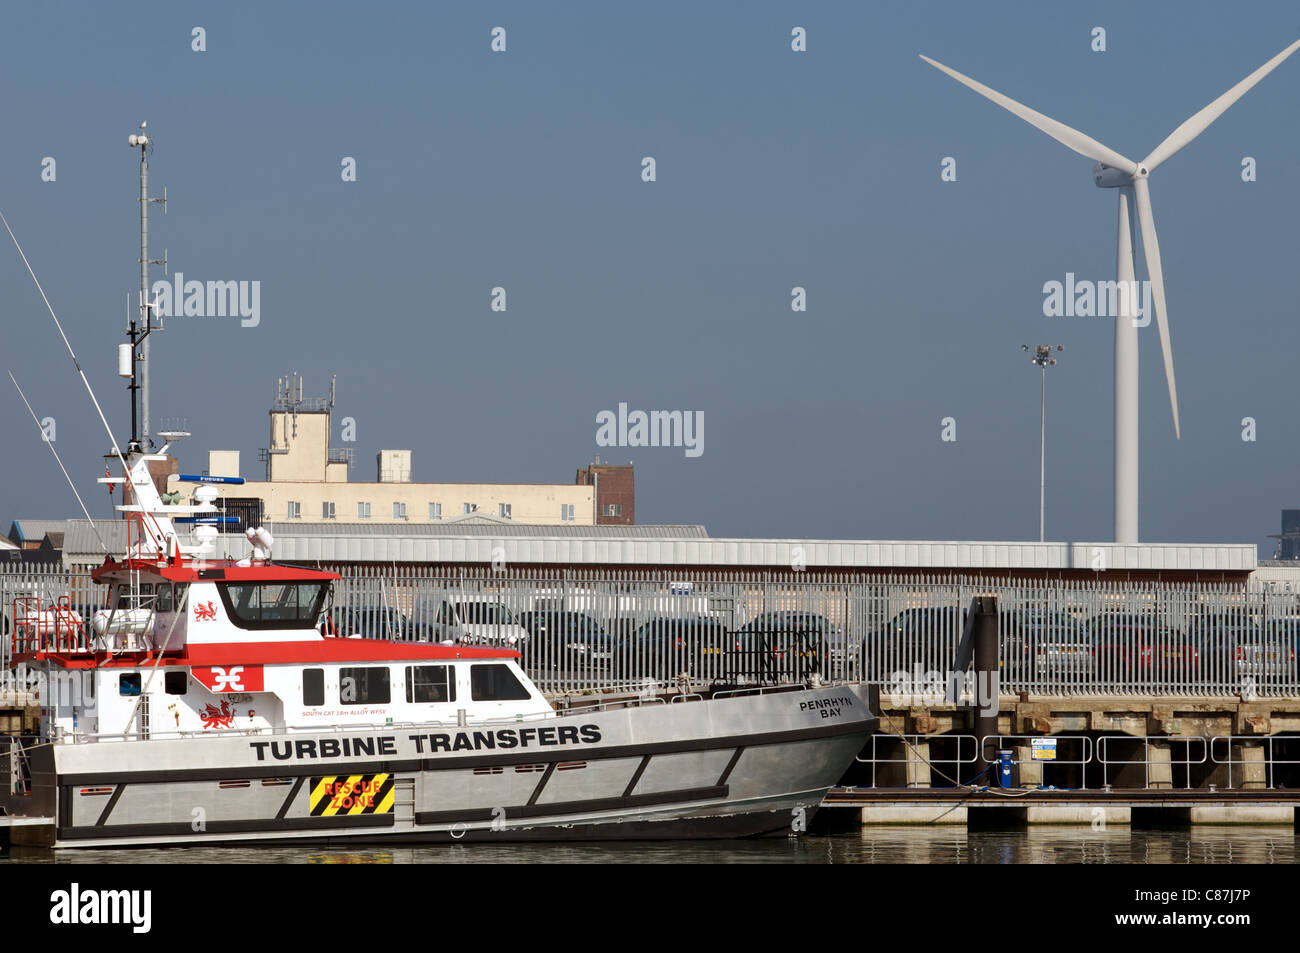 Motorboat used in the offshore wind farm industry, Lowestoft, Suffolk, UK. - Stock Image